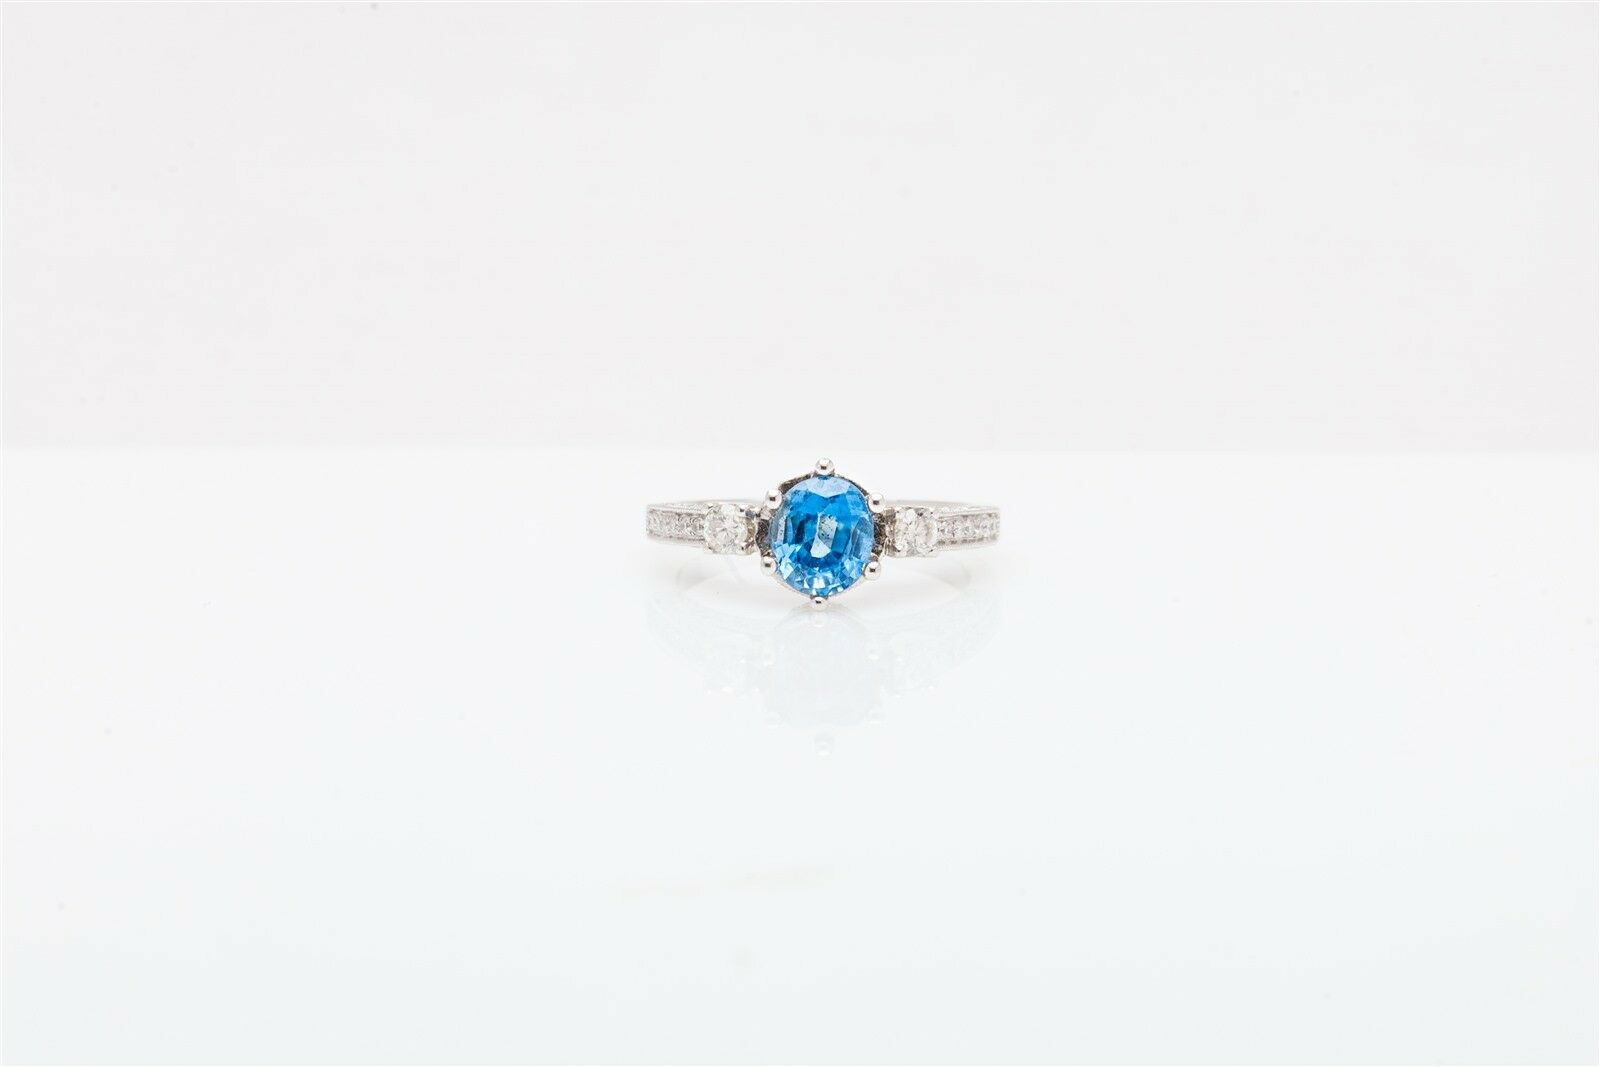 14kt White Gold 1.95ct Natural African Blue Topaz & Egl Certified Diamond Ring Fine Jewelry Jewelry & Watches